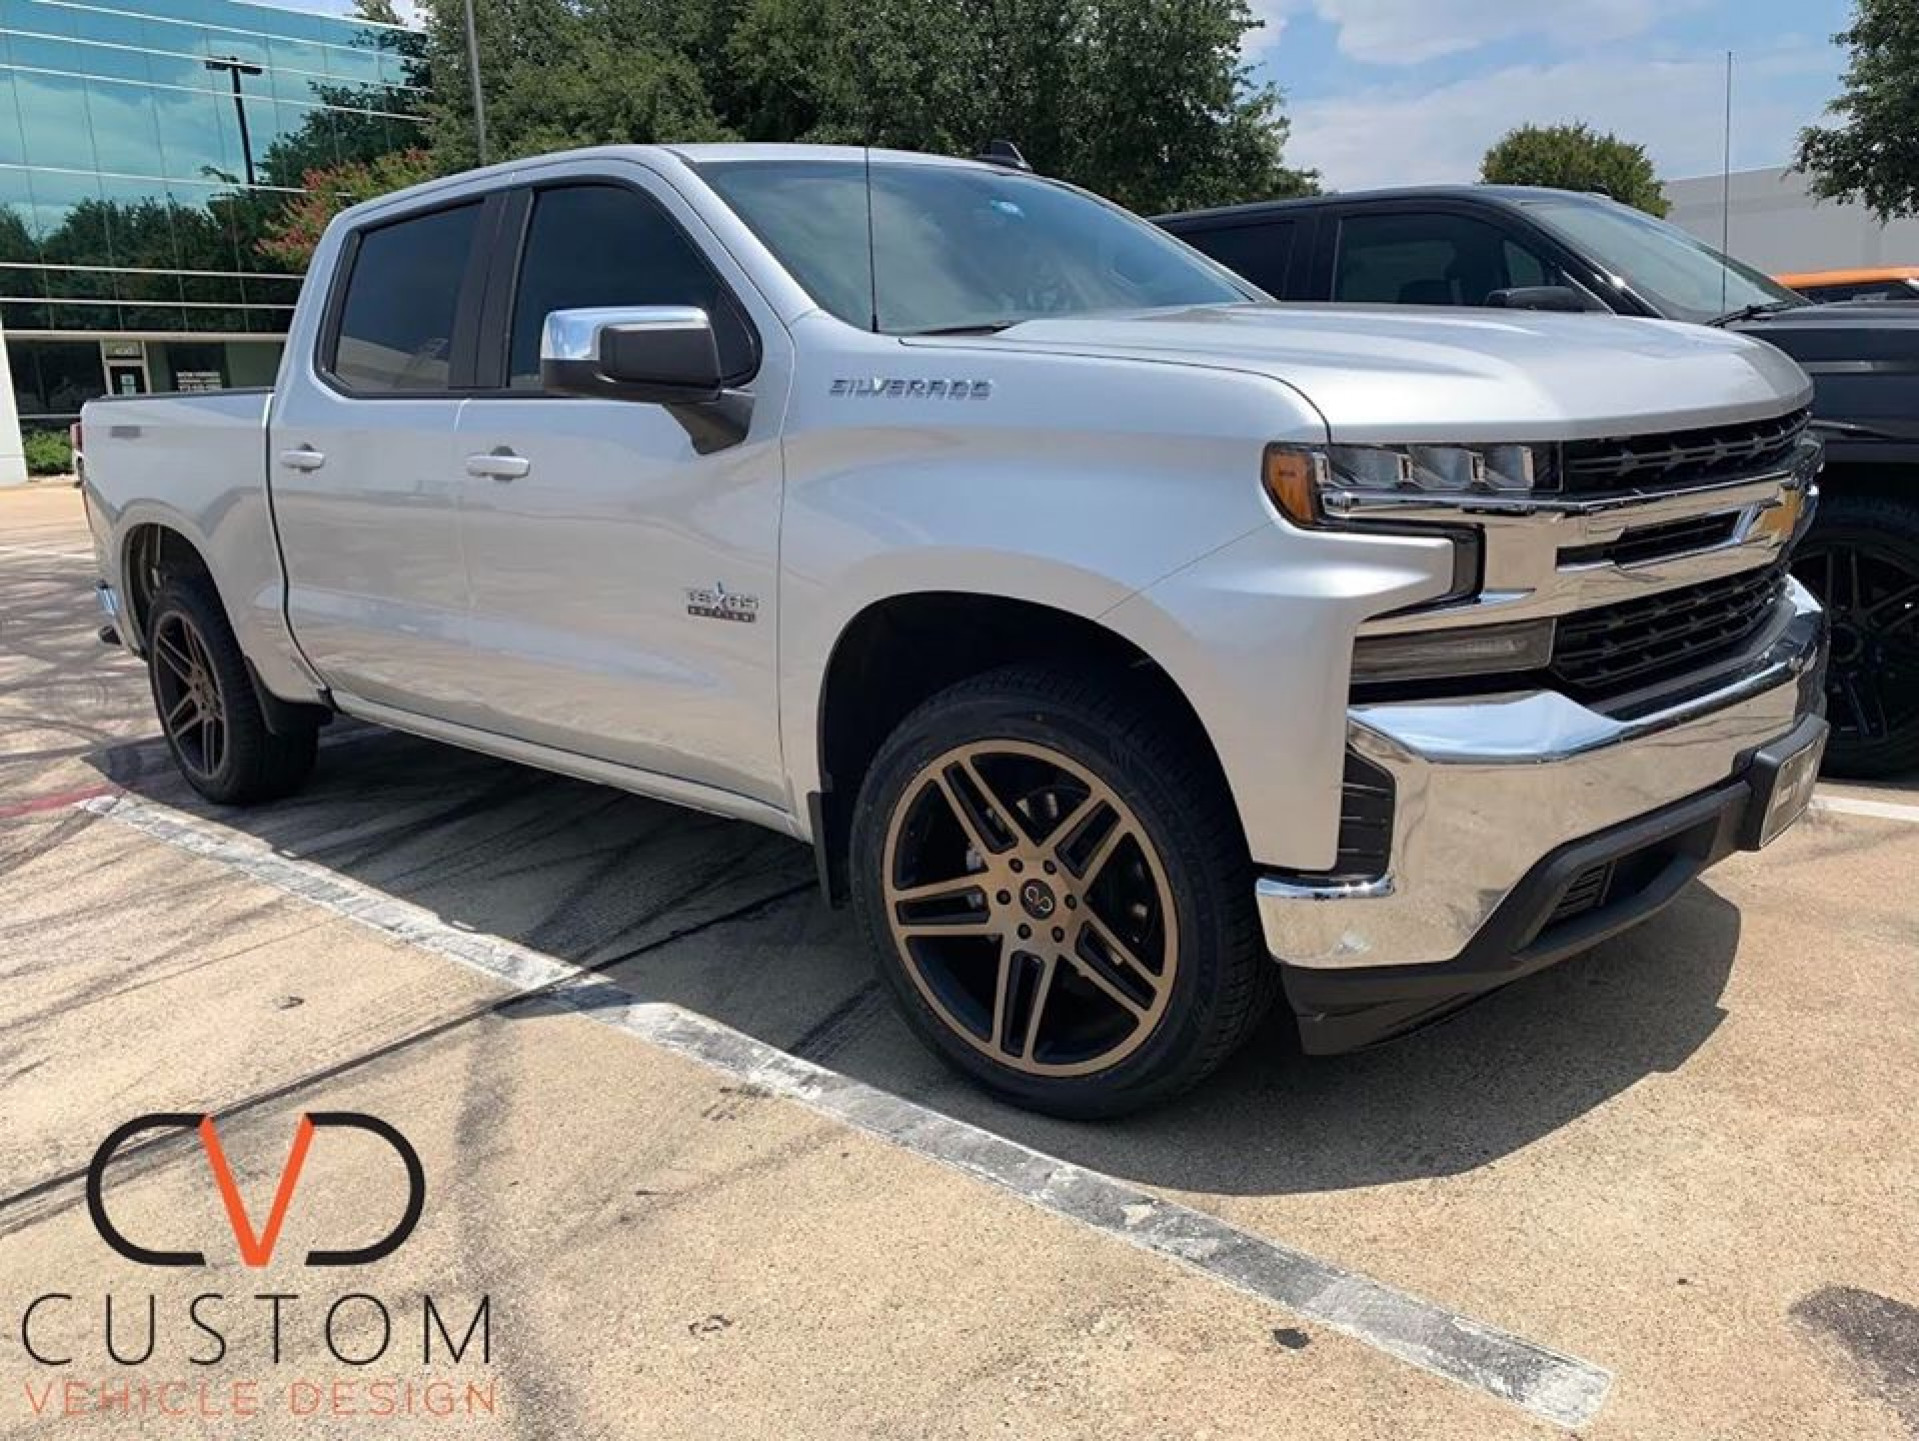 Chevrolet Silverado with Black Rhino Safari wheels and Vogue Signature V Tyres